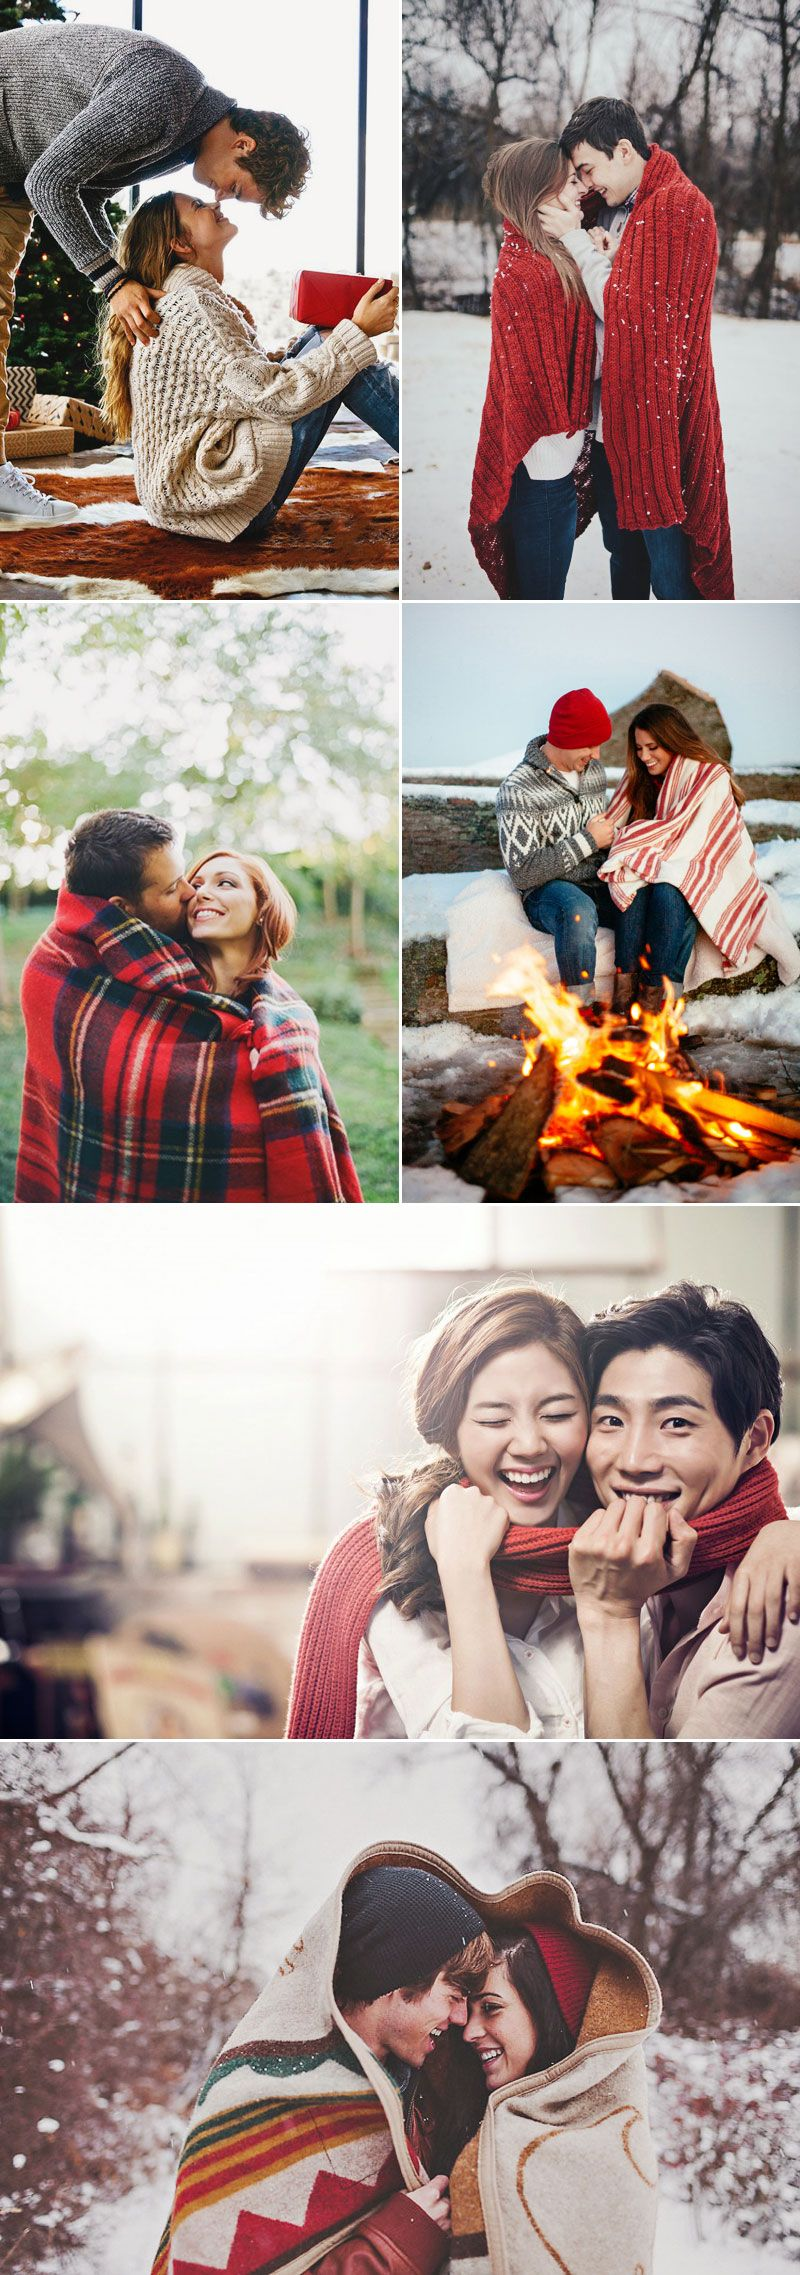 20 Cute Christmas Photo Ideas For Couples To Show Love Praise Wedding Christmas Couple Pictures Christmas Photos Christmas Photoshoot